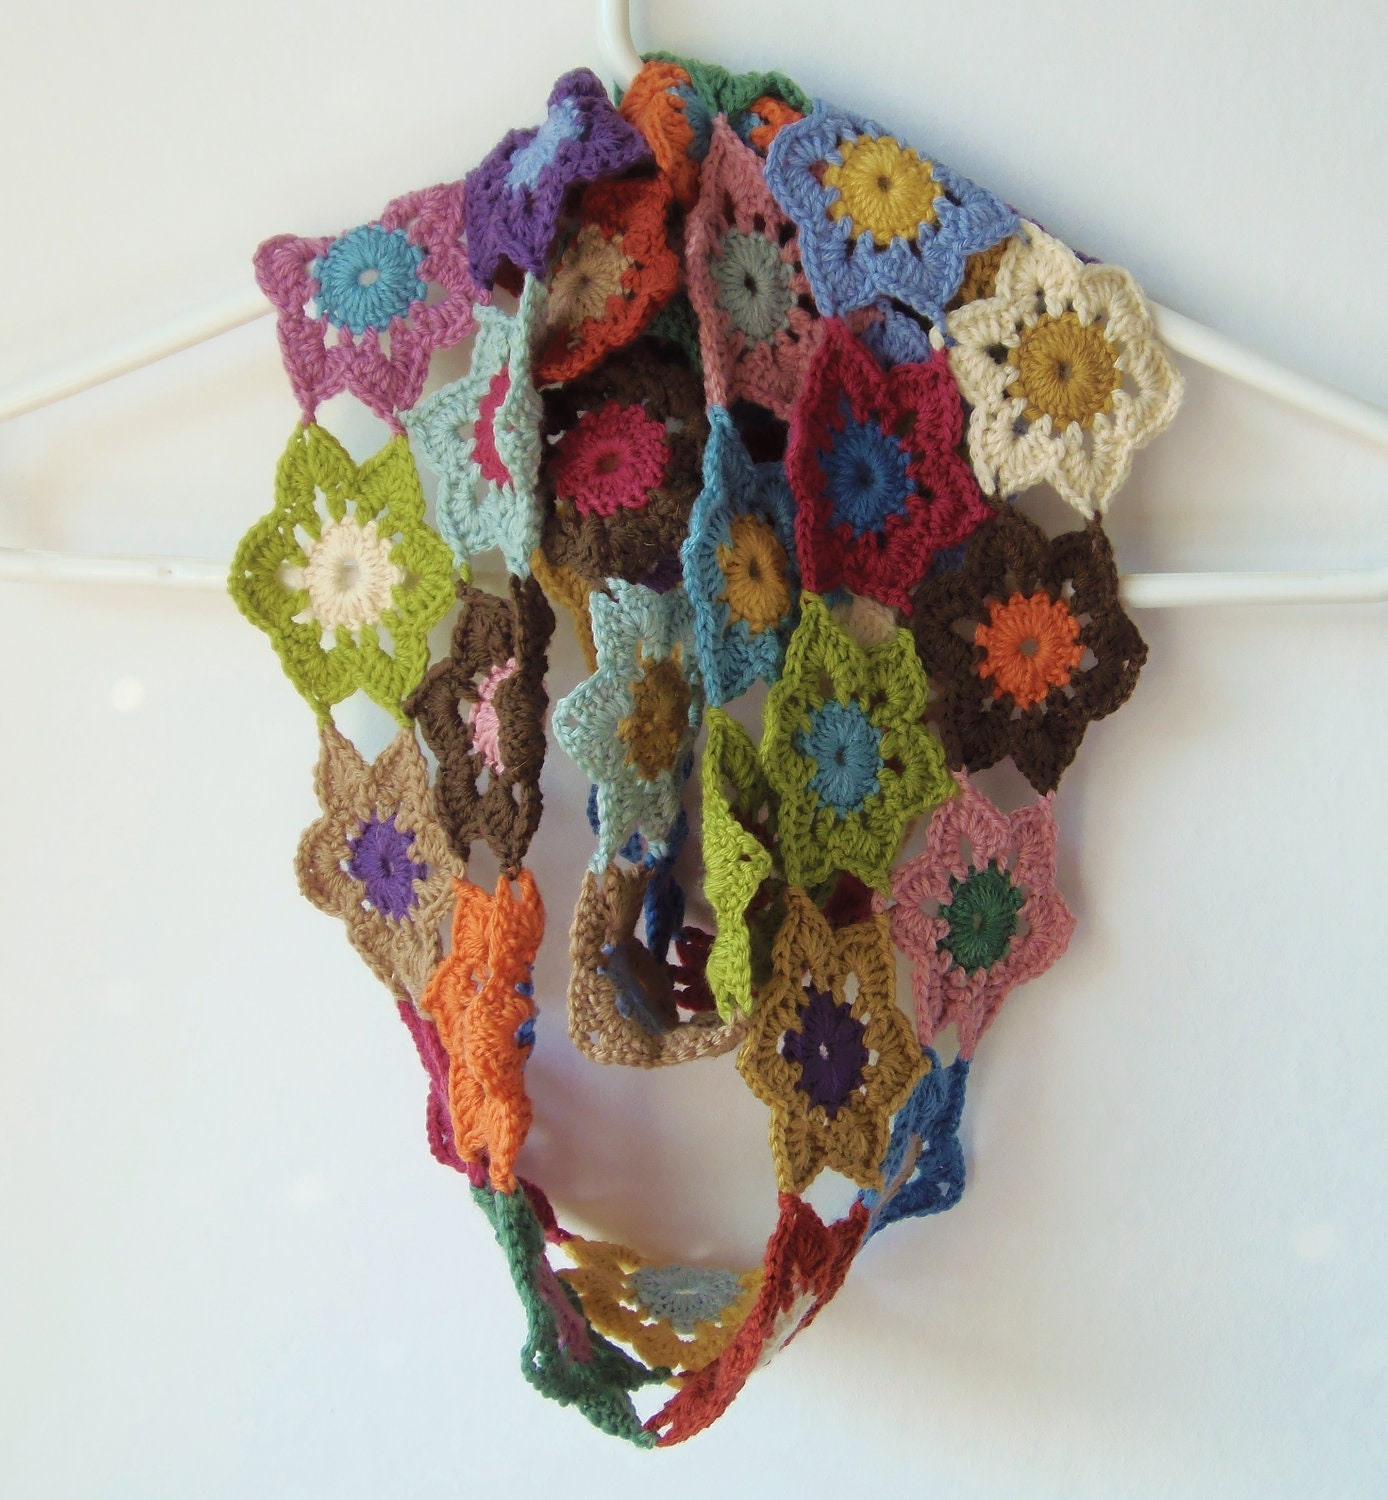 Woolen Crochet : ... crochet flower scarf wool multicolor from Crochet Flower Scarves